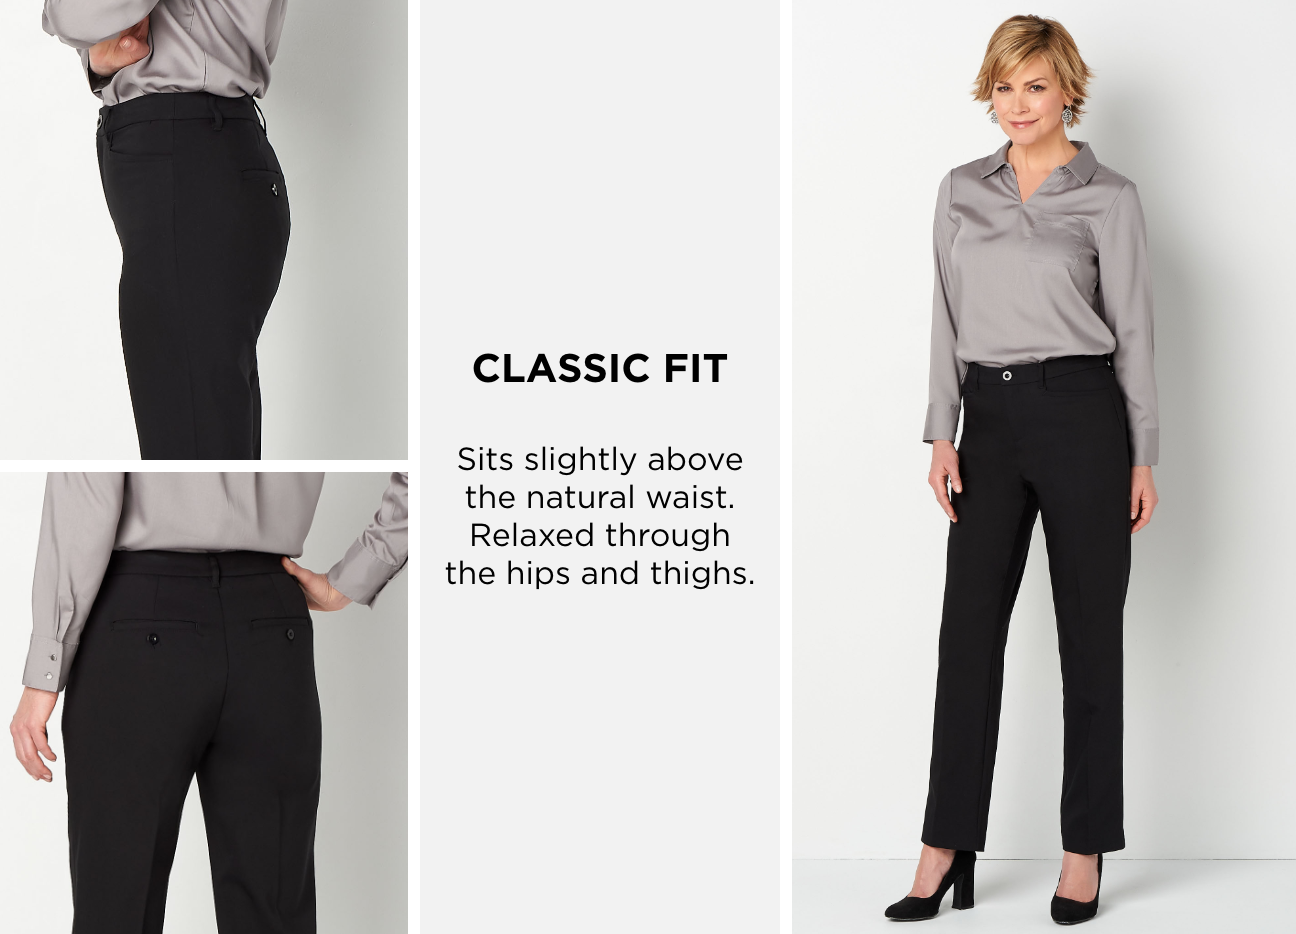 Classic Fit. Sits slightly above the natural waist. Relaxed through the hips and thighs.